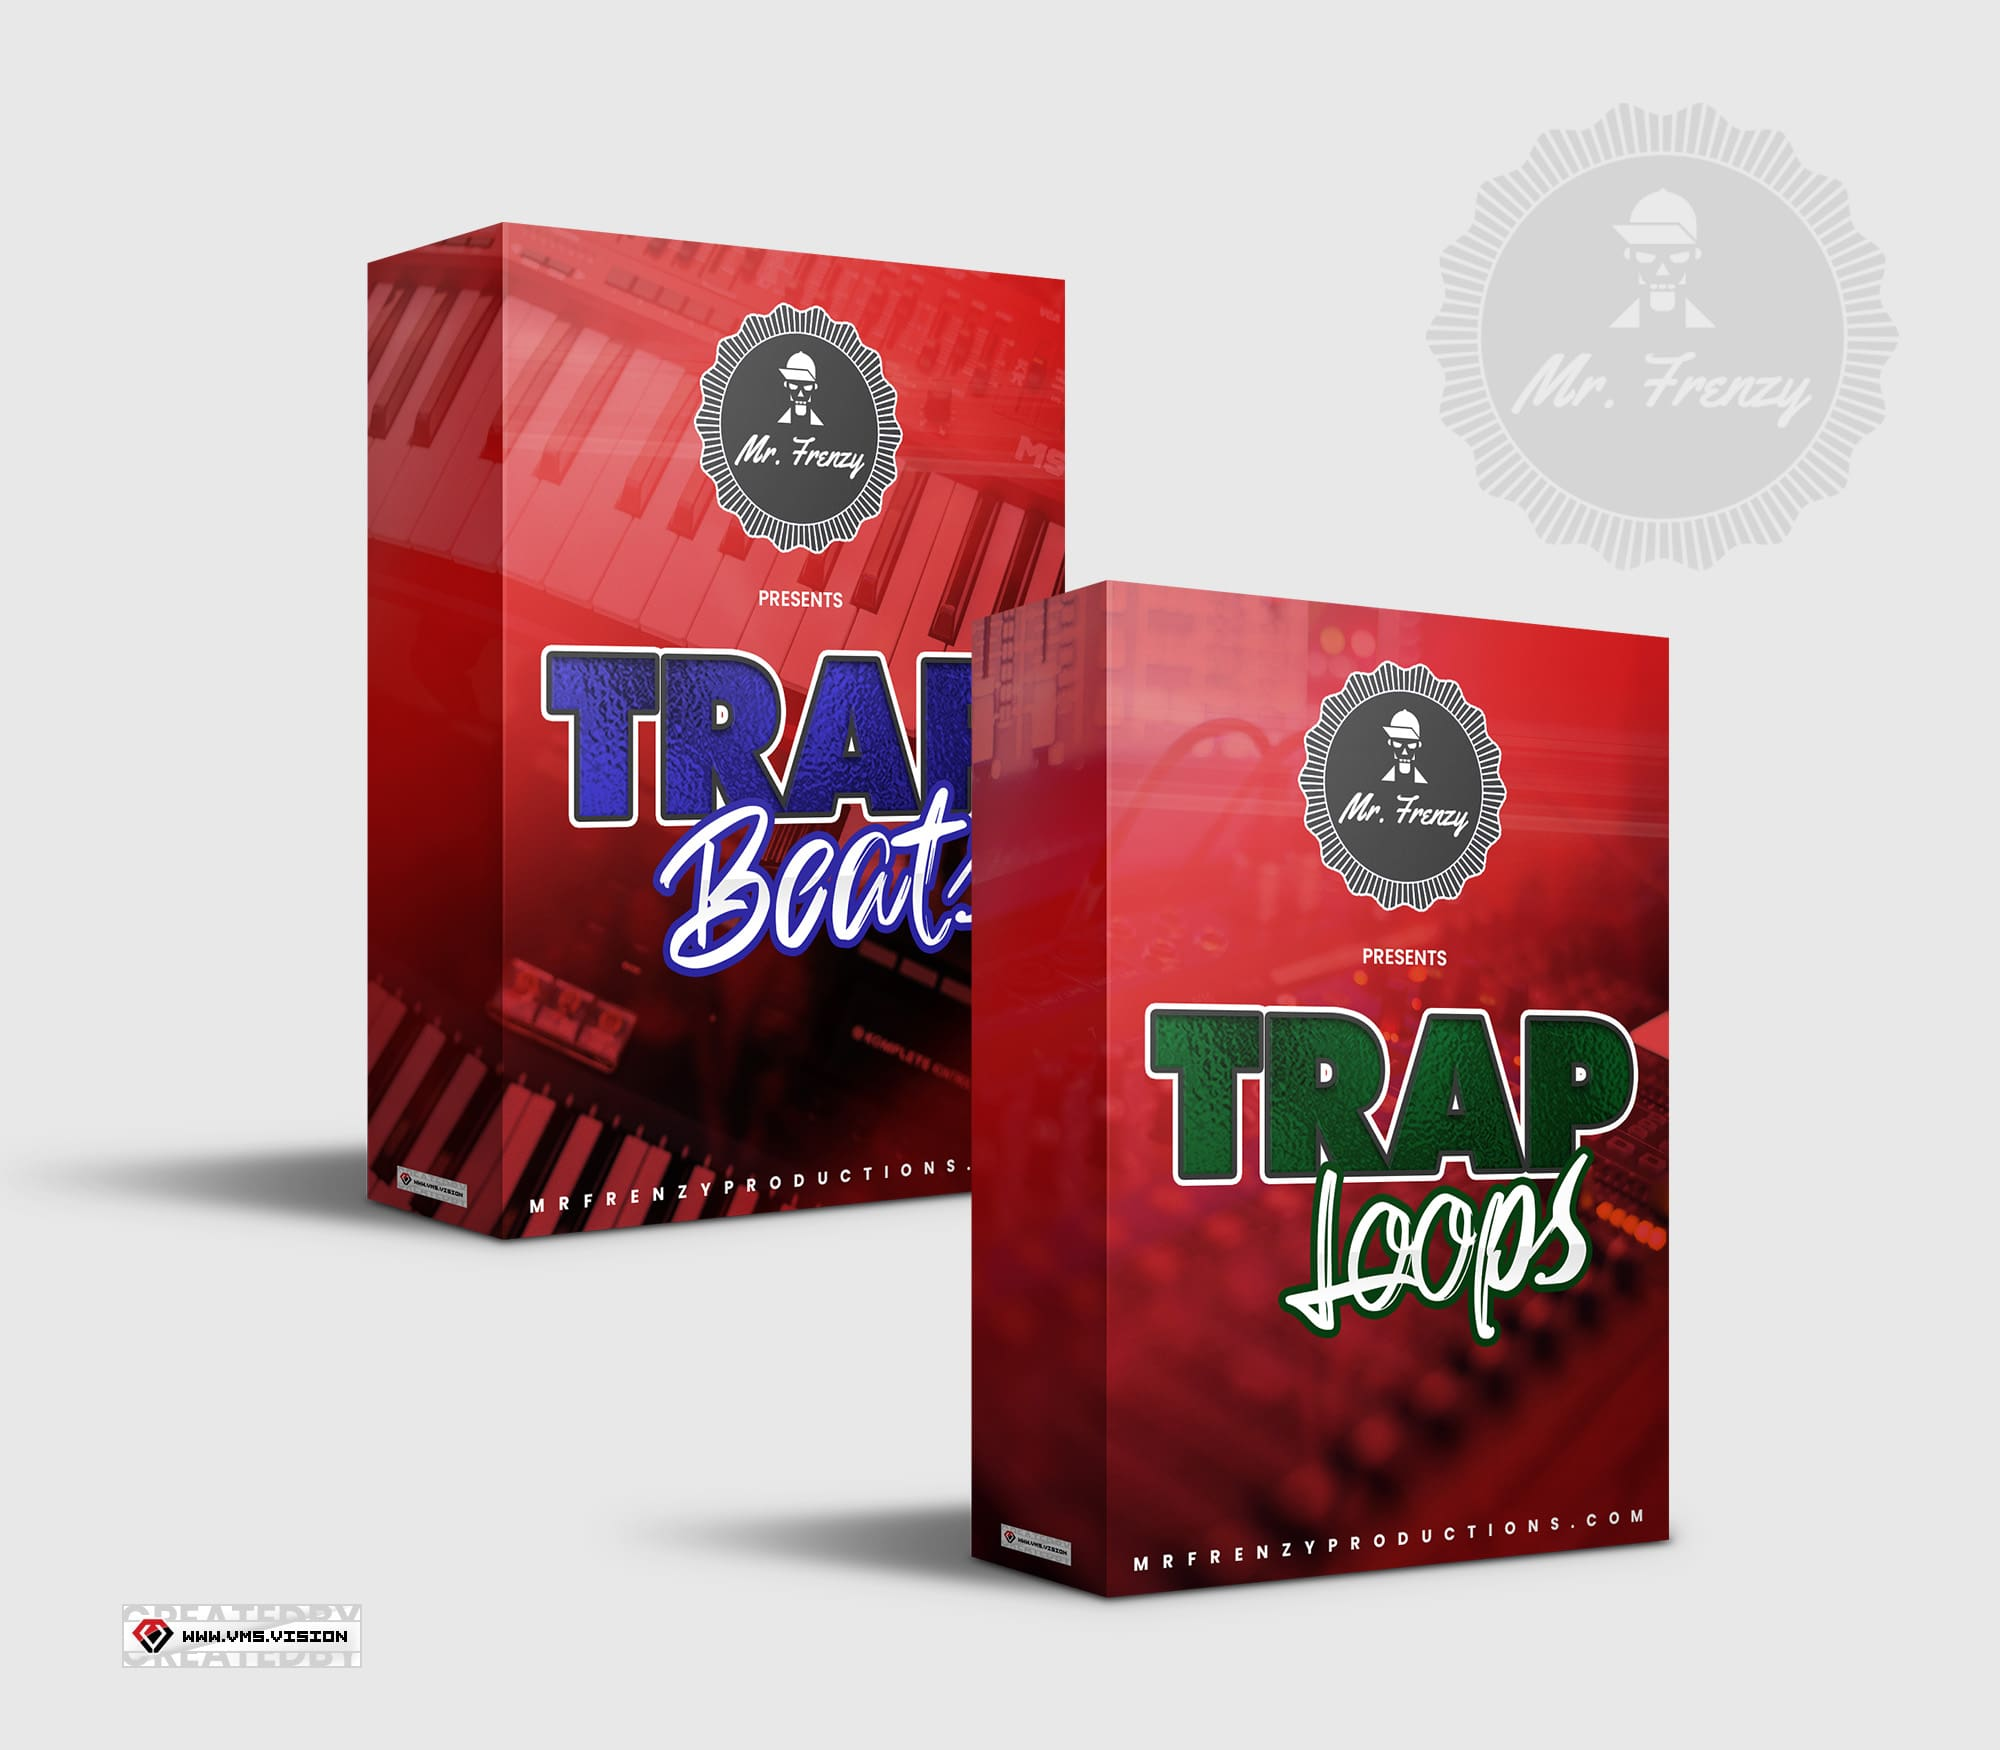 Mr Frenzy – Trap Beats and Trap Loops DrumKit Design